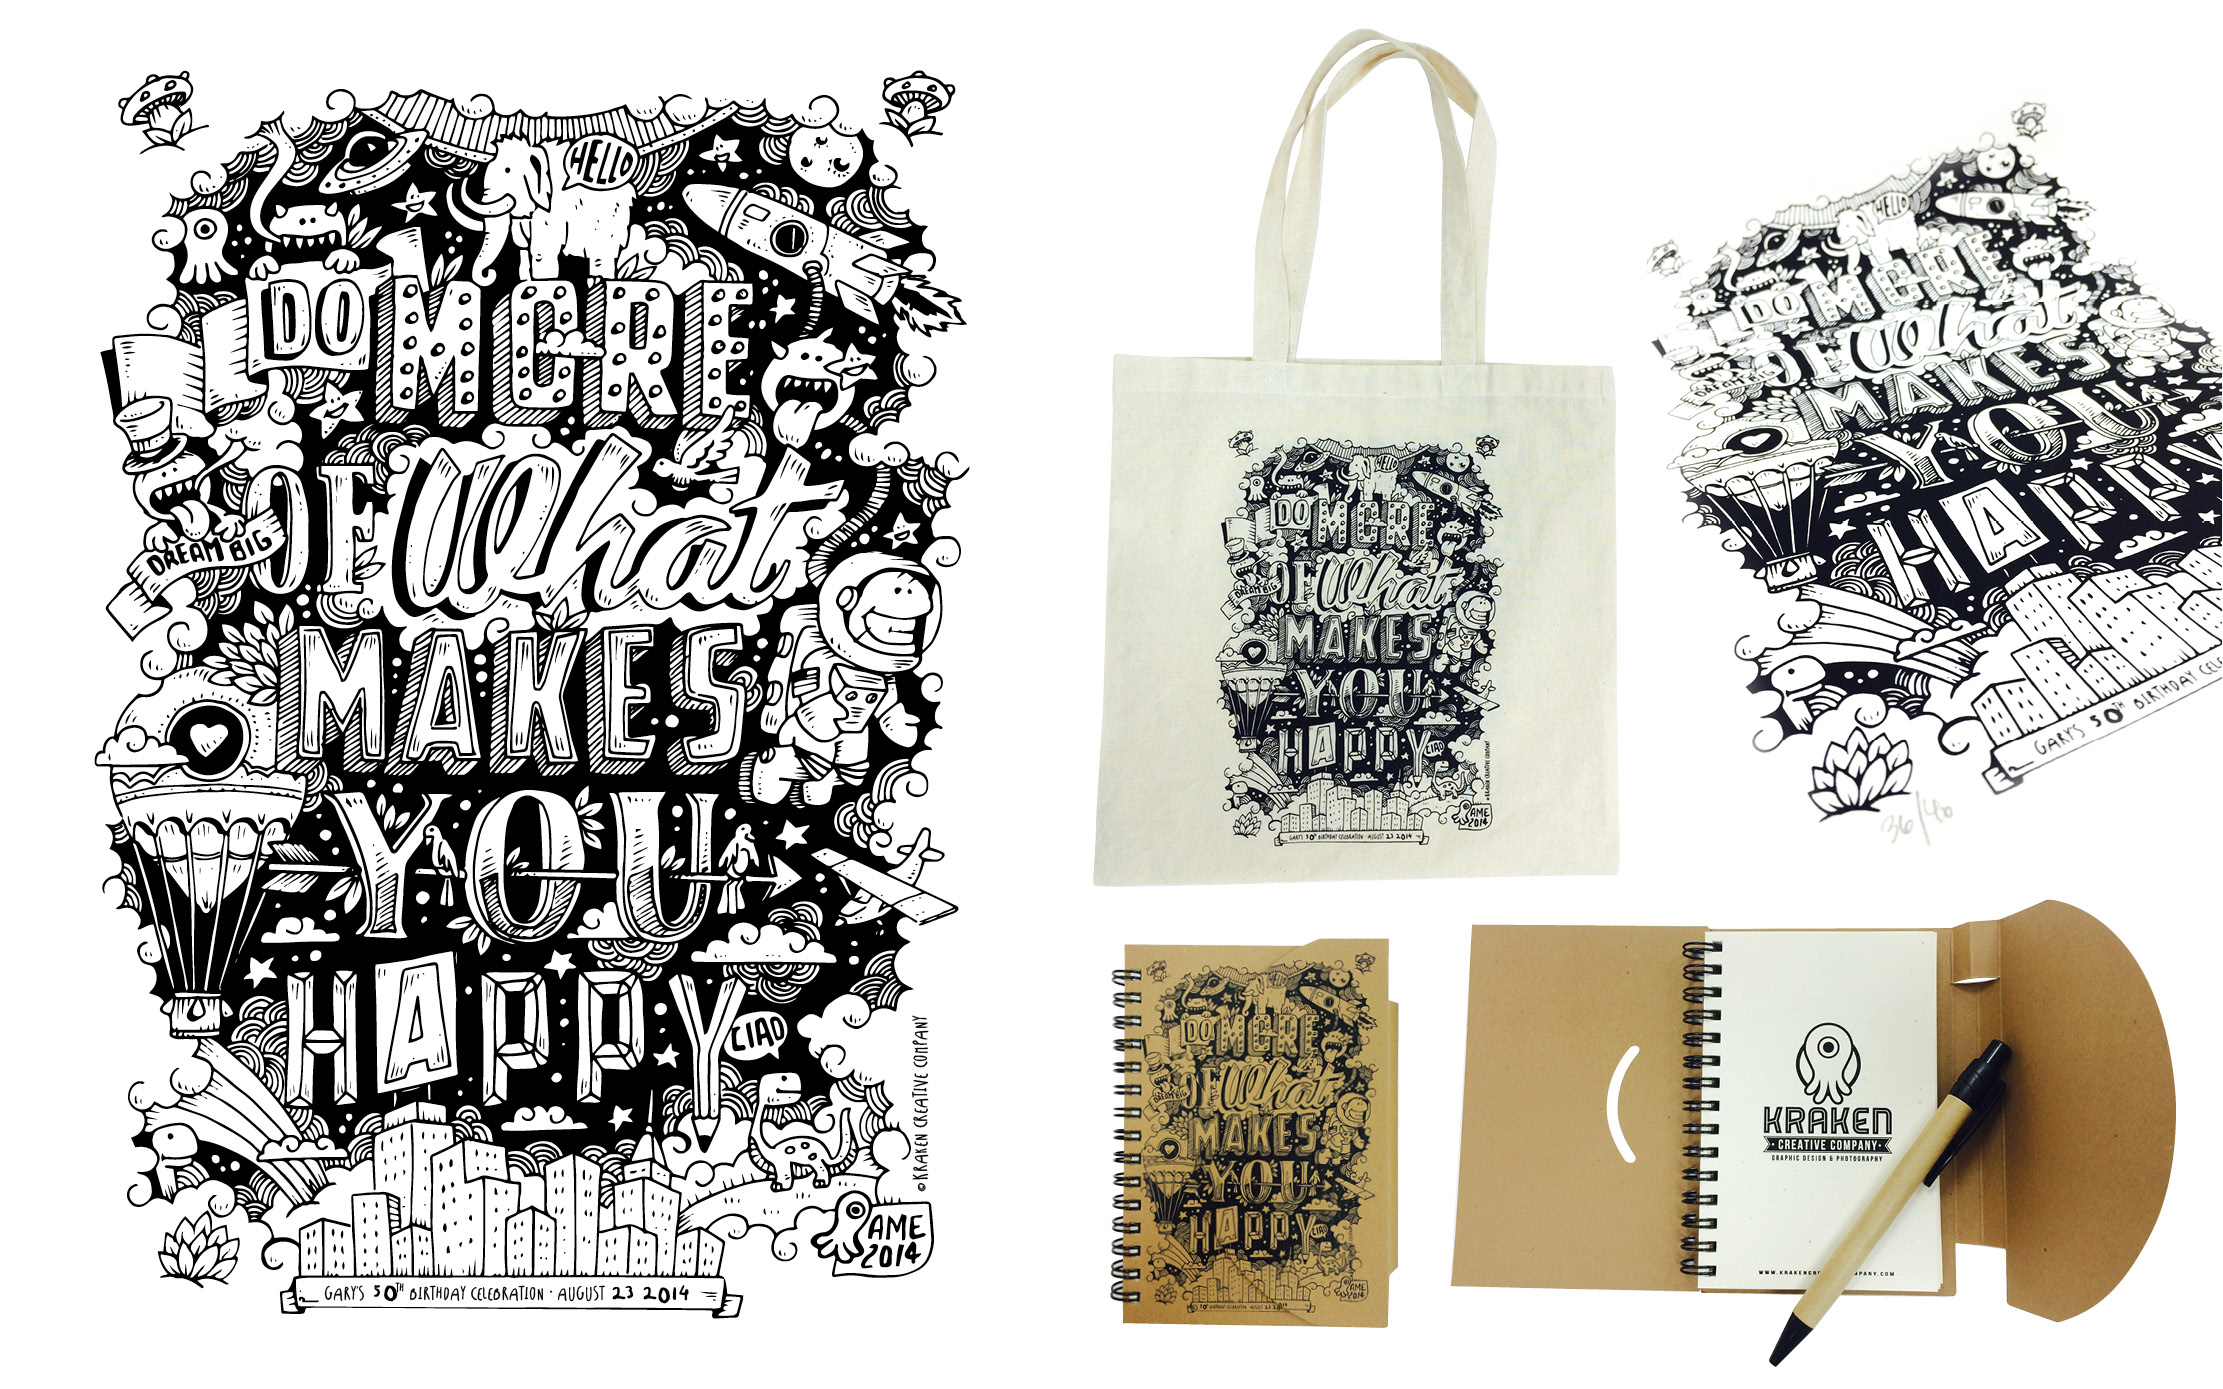 Clockwise from left: Original Illustration, ink on paper. Canvas Tote: Silkscreen by Technicolor Printing, La Habra, CA.  Sign and numbered  limited edition Silkscreen Print printed by  Technicolor Printing, La Habra, CA. Notebook digital print by Quality Instant Printing, San Dimas, CA.